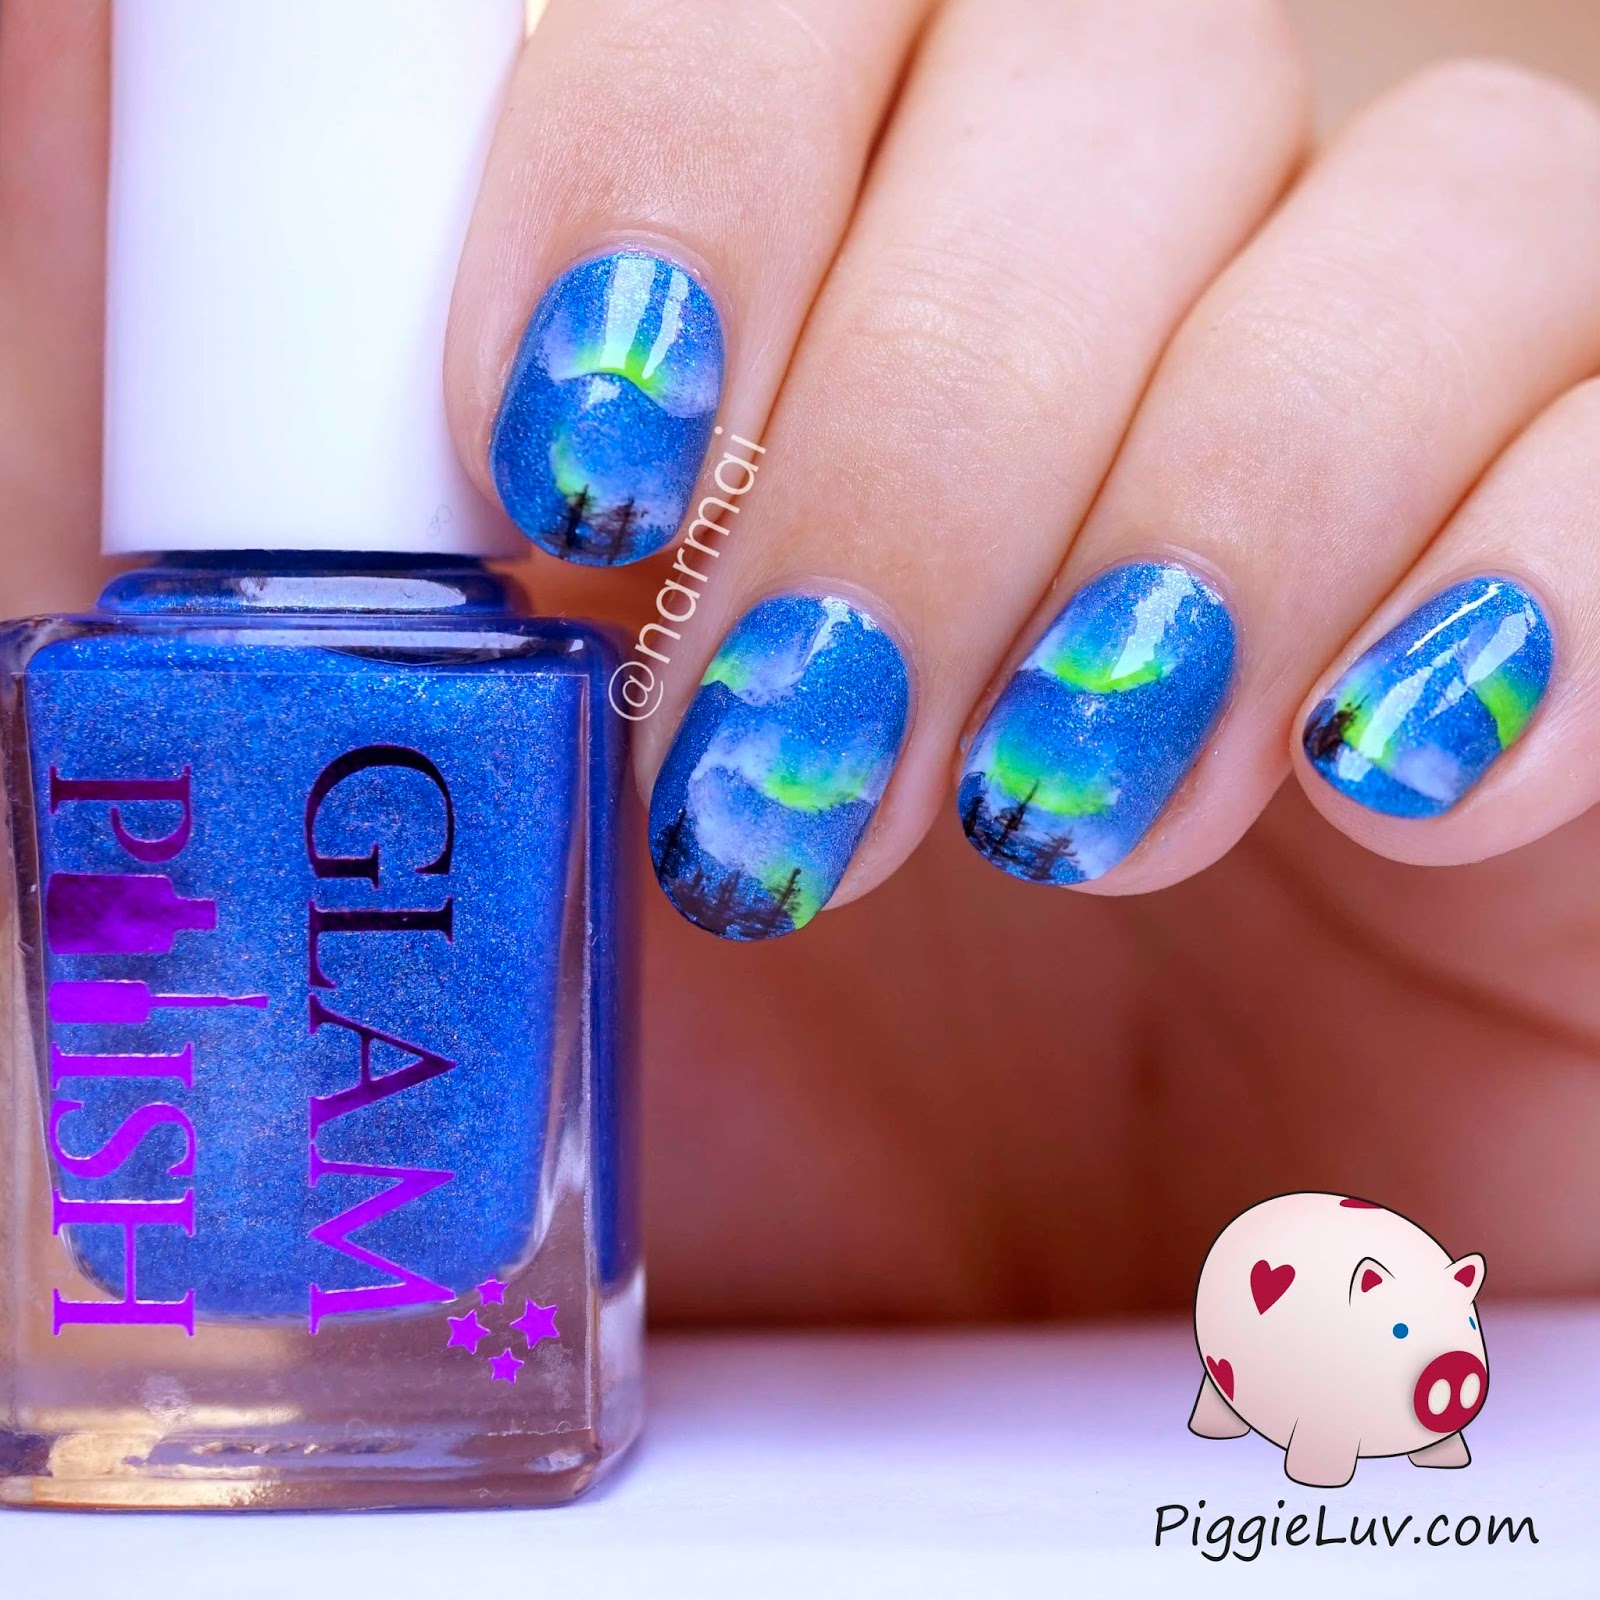 PiggieLuv: Aurora Borealis nail art (glow in the dark)